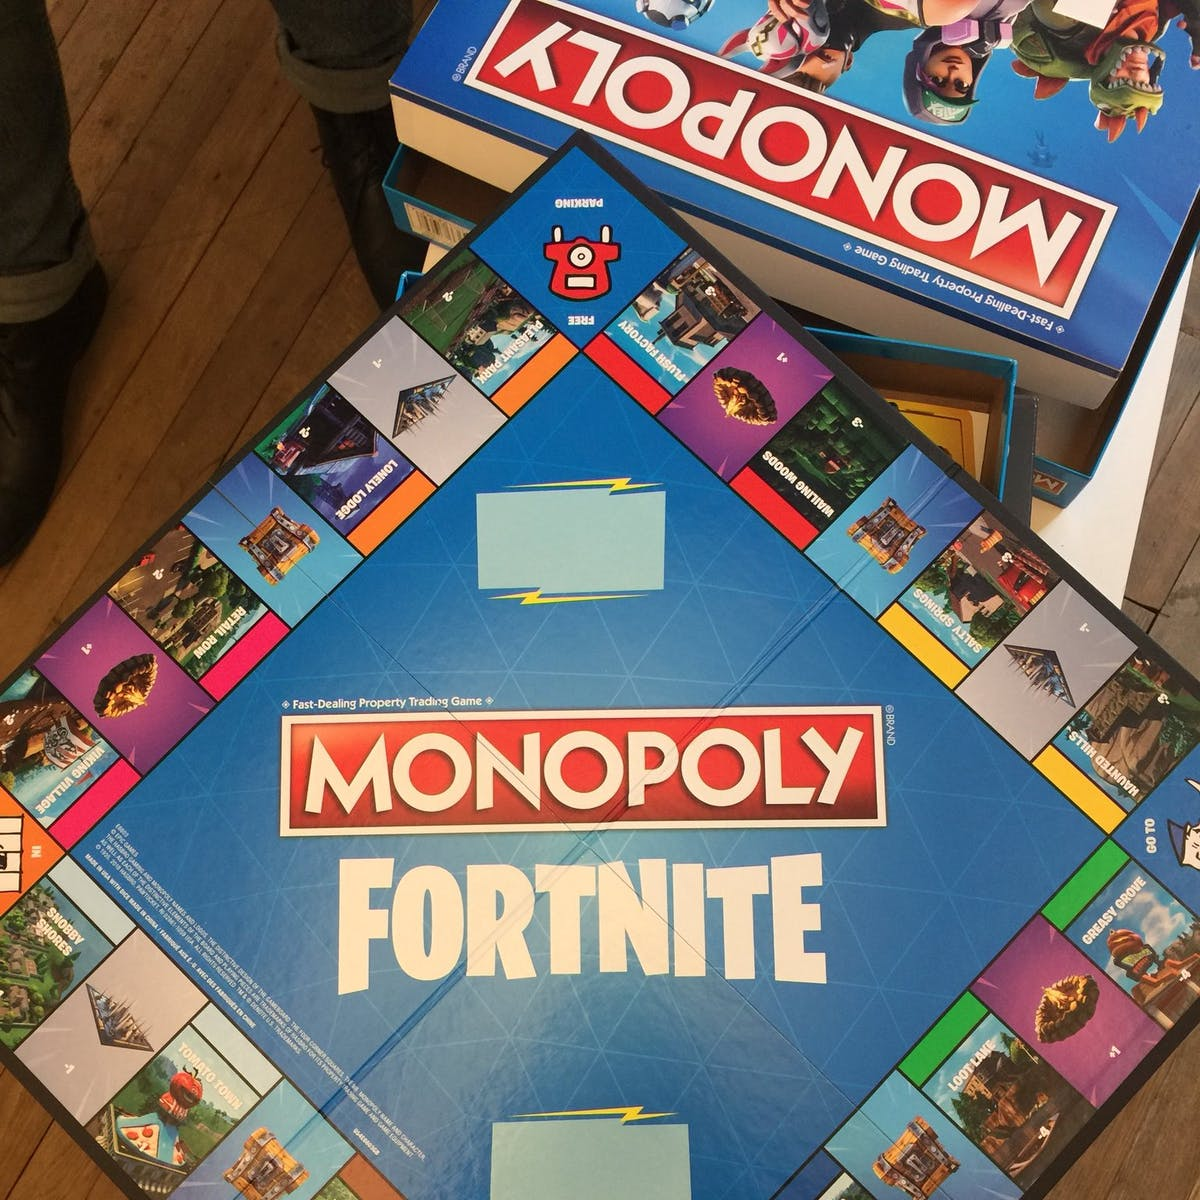 Fortnite Monopoly Review: Nothing Like Either Game, but